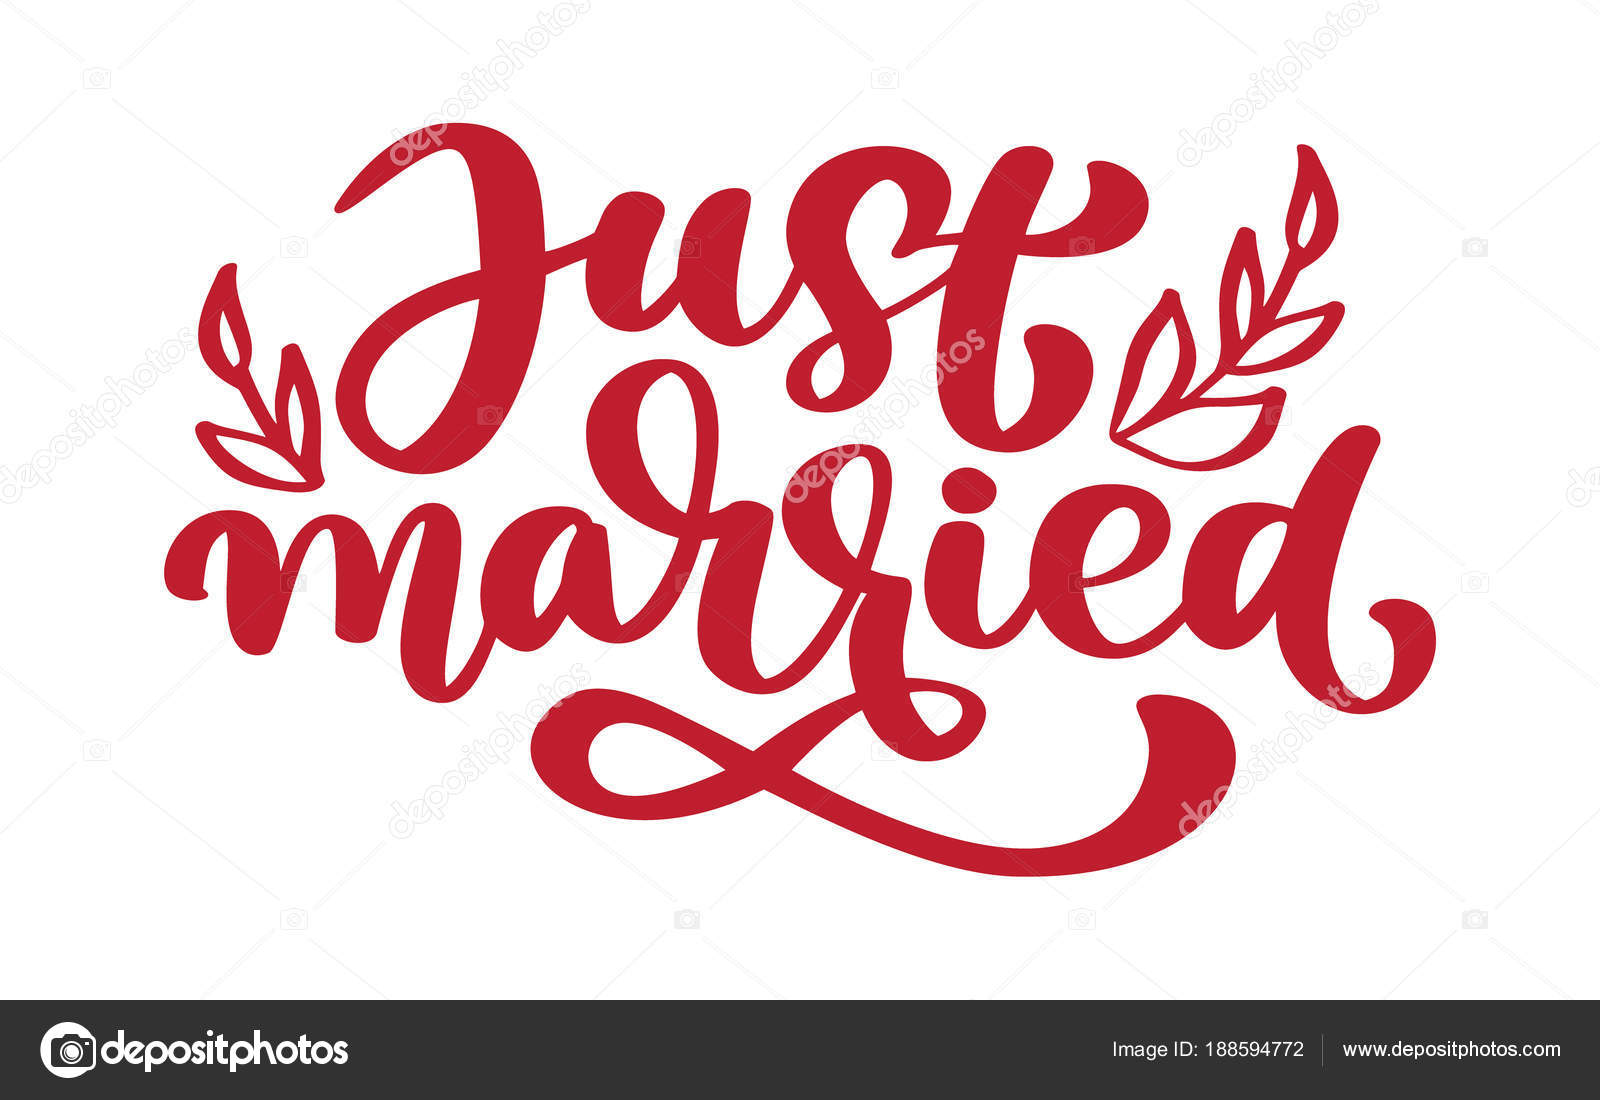 Just married hand lettering text for wedding cards and invitation just married hand lettering text for wedding cards and invitation vector illustration phrase isolated on stopboris Image collections